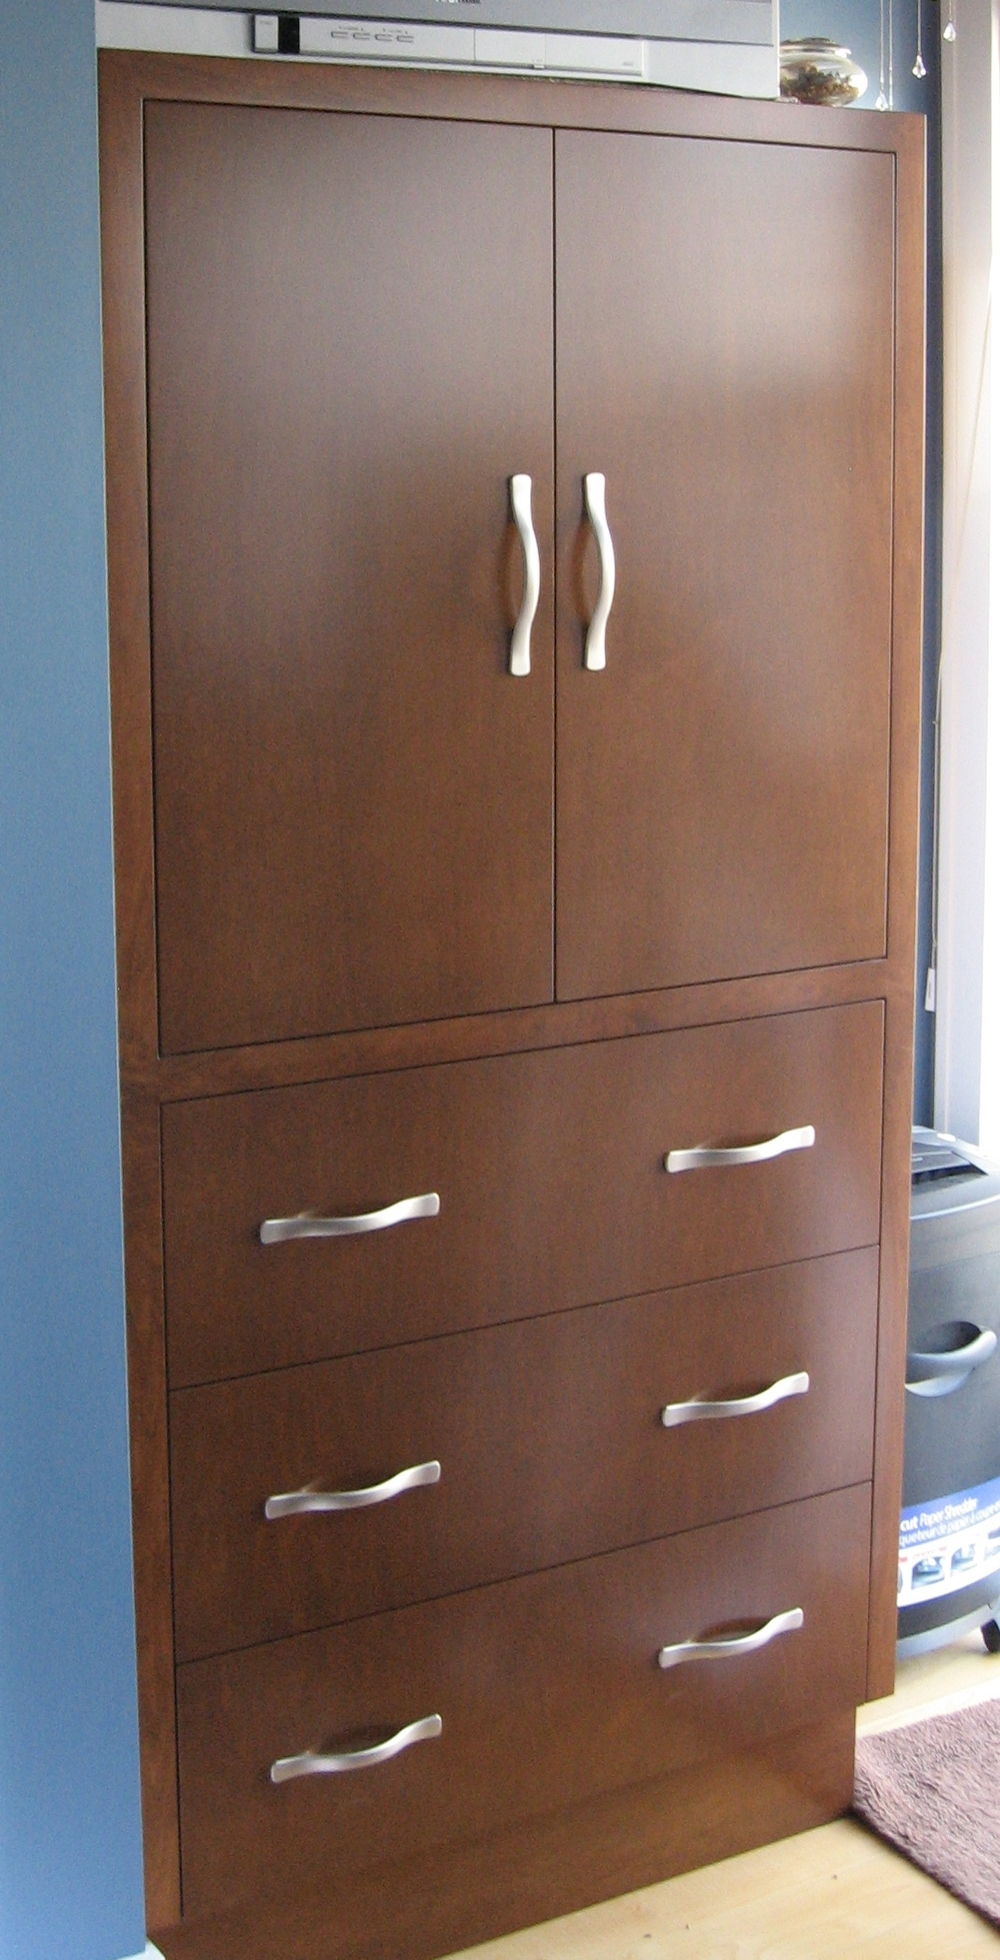 built-in-wood-bedroom-storage-cabinetry.JPG